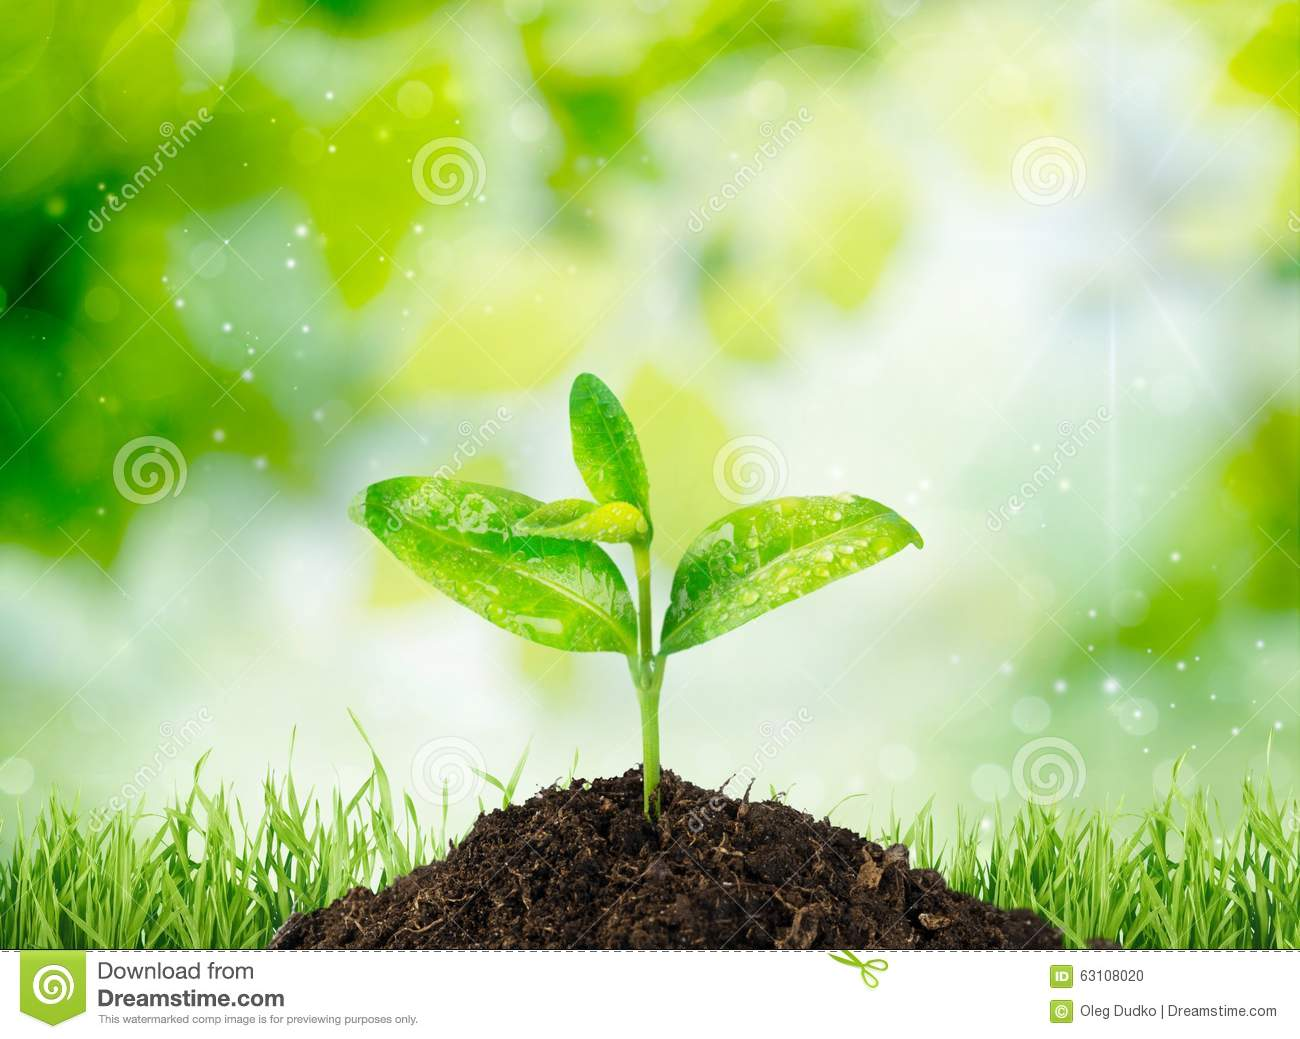 Nature Images 2mb: Growth Stock Photo